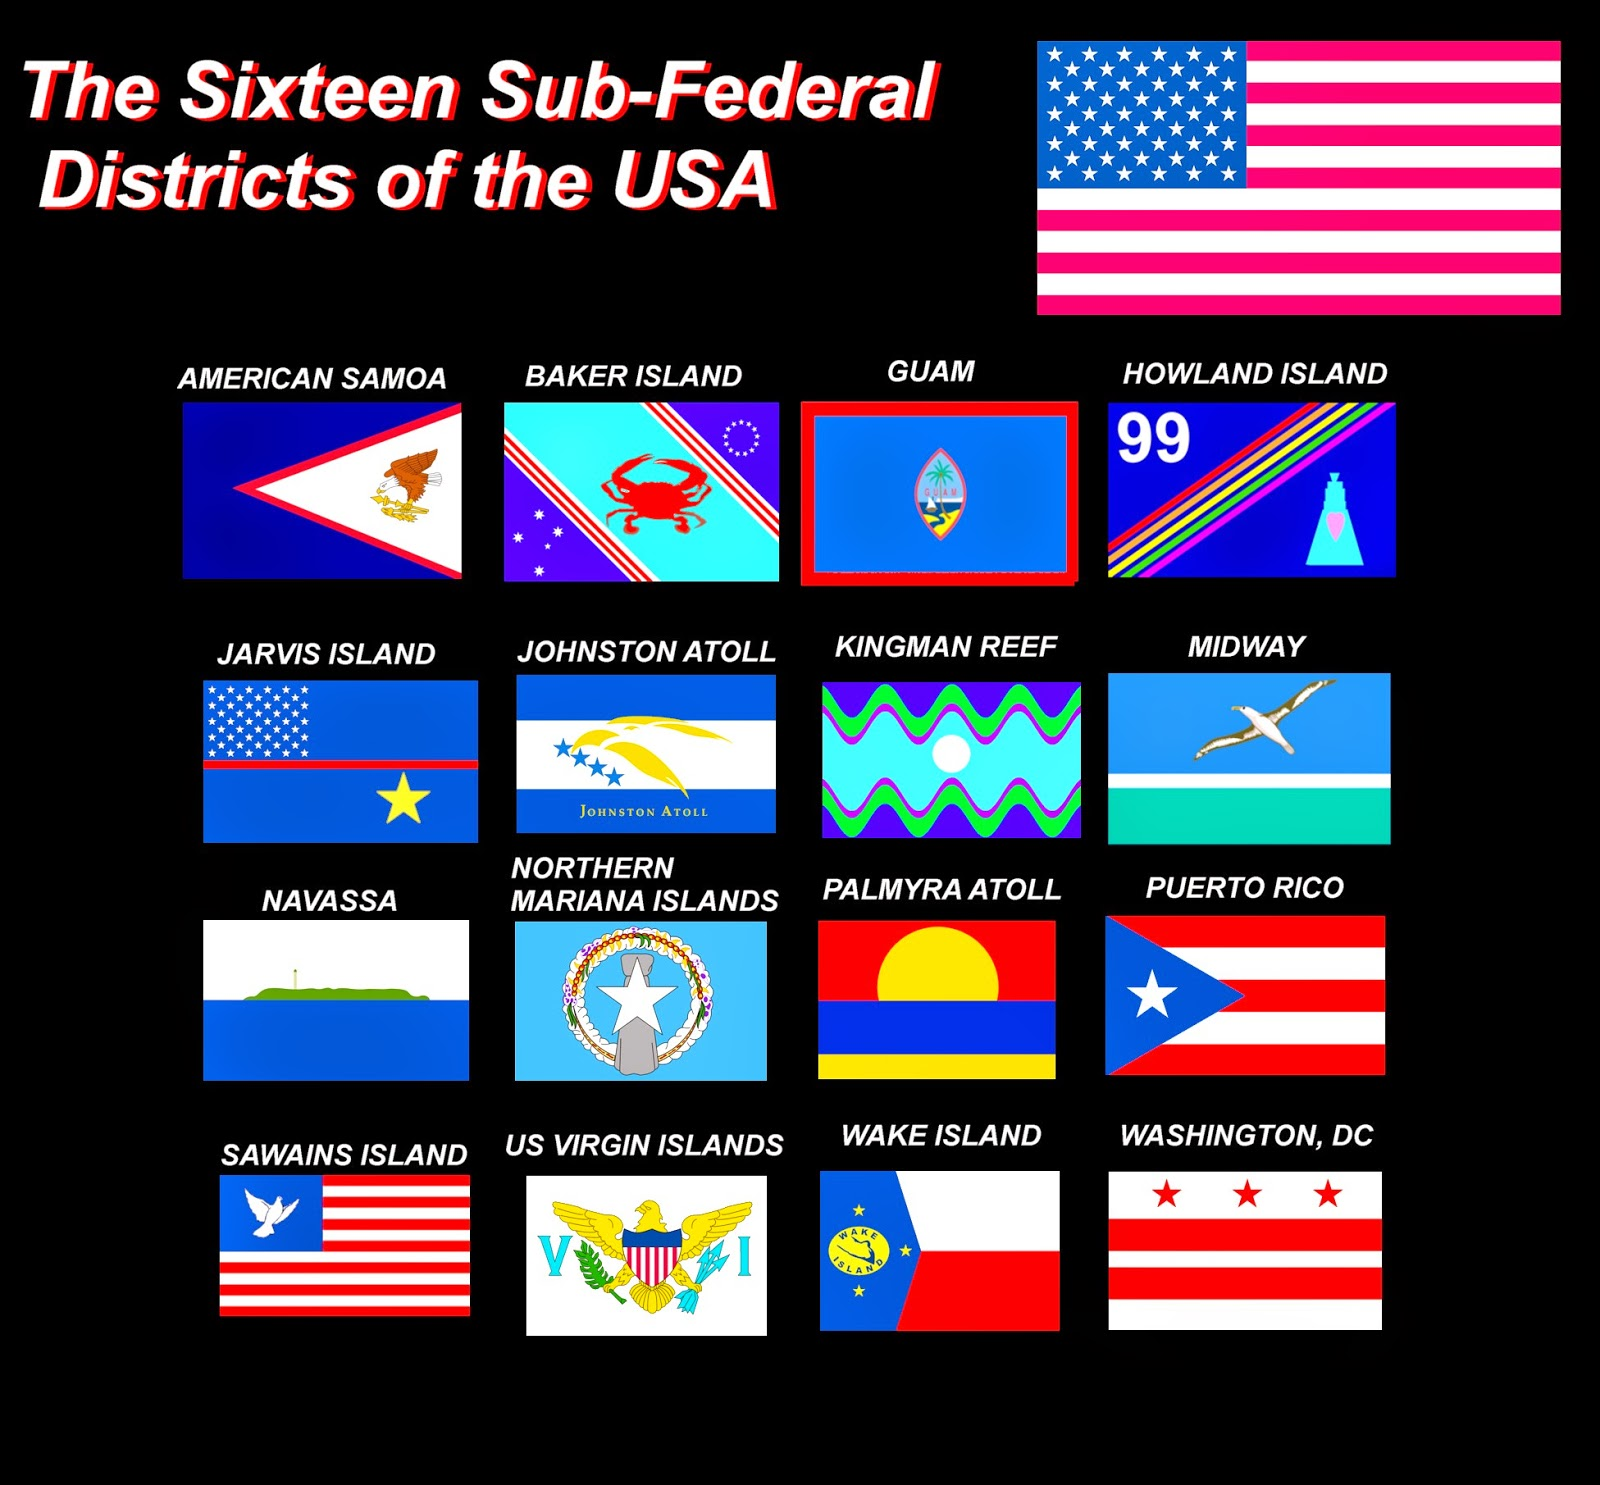 The voice of vexillology flags heraldry may 2014 the voice of vexillology flags heraldry buycottarizona